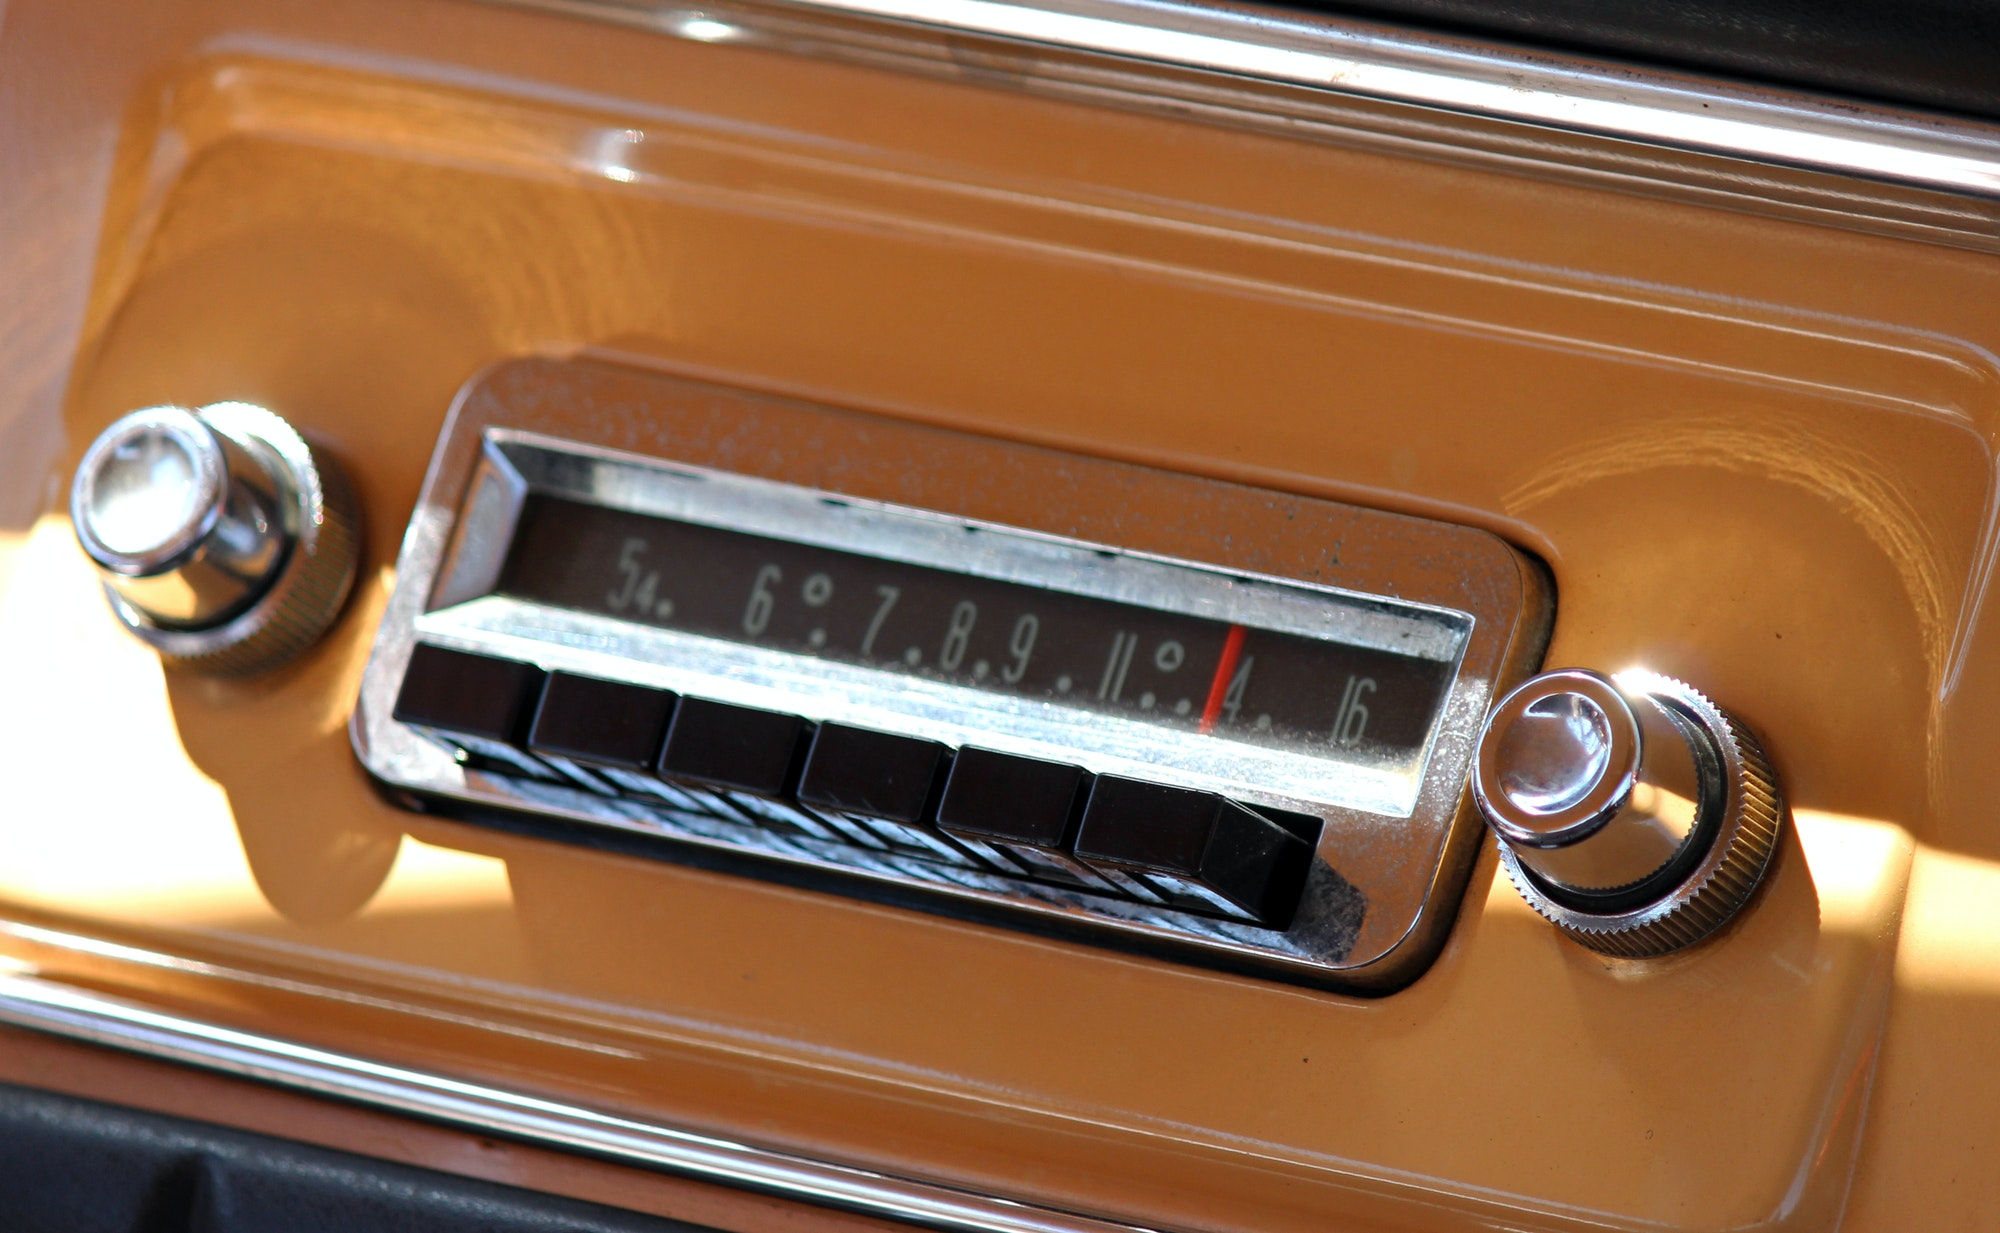 In-Car Entertainment System For A Vintage Car.